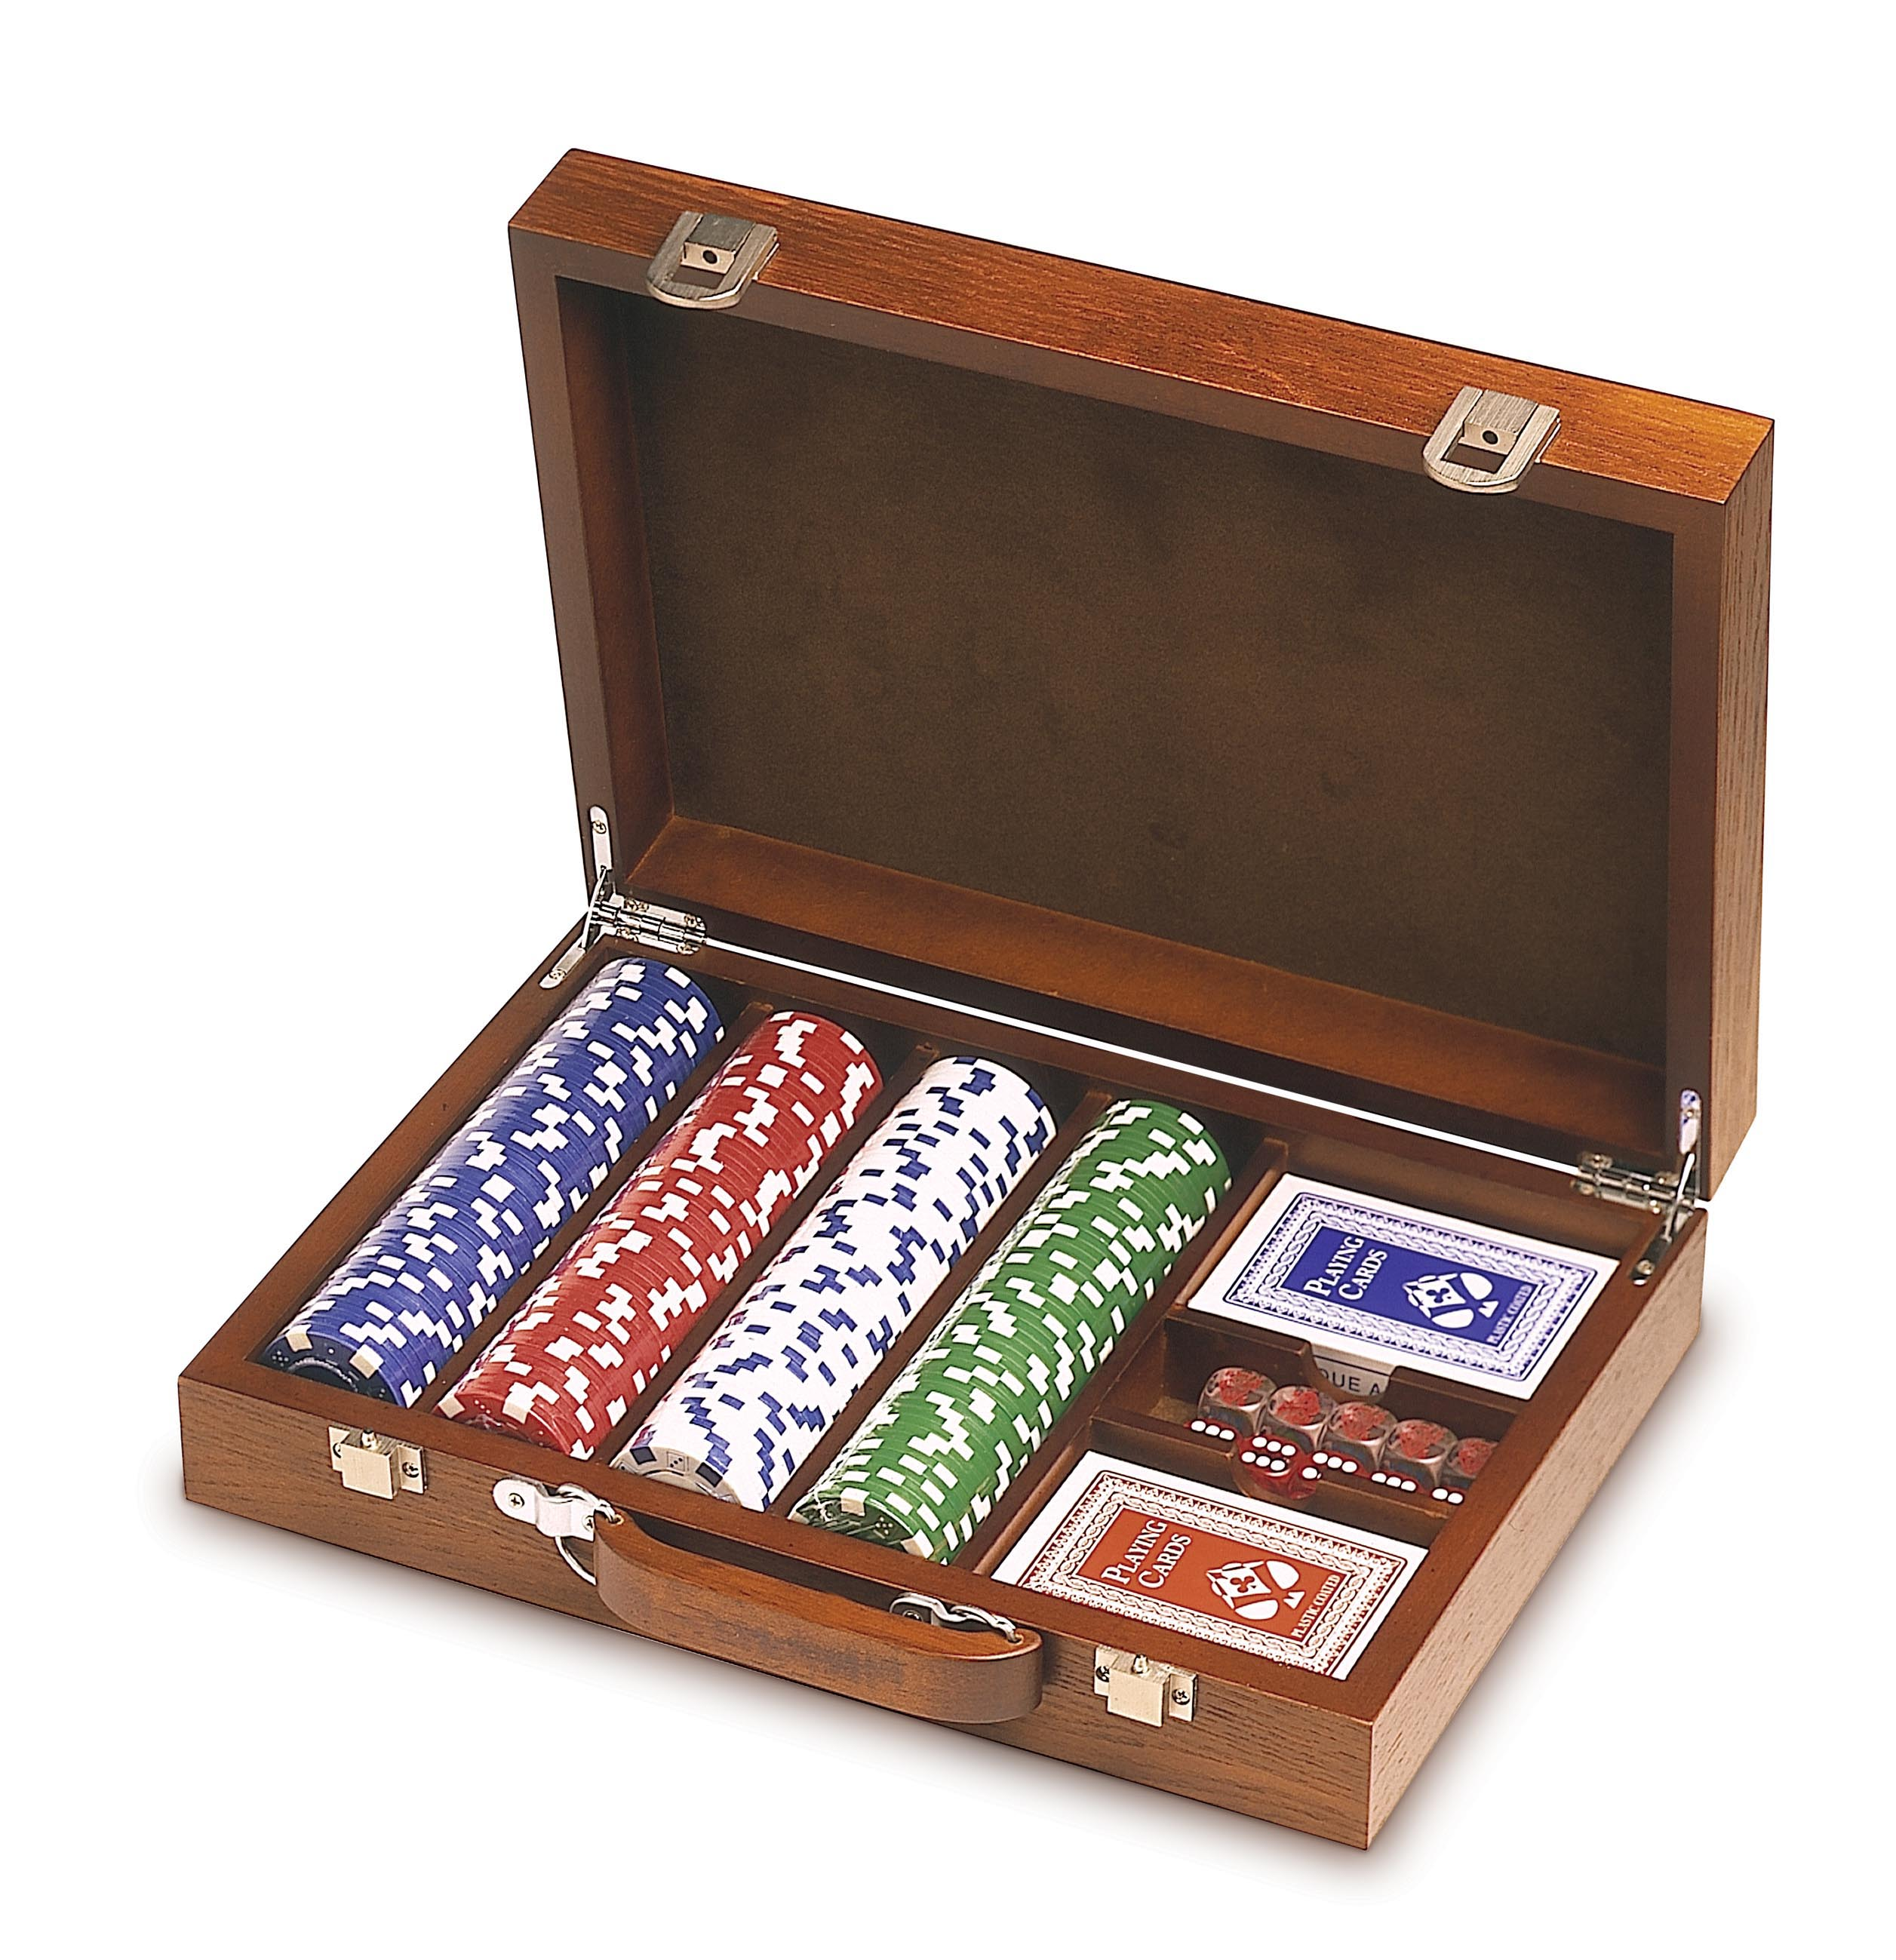 Poker coffret